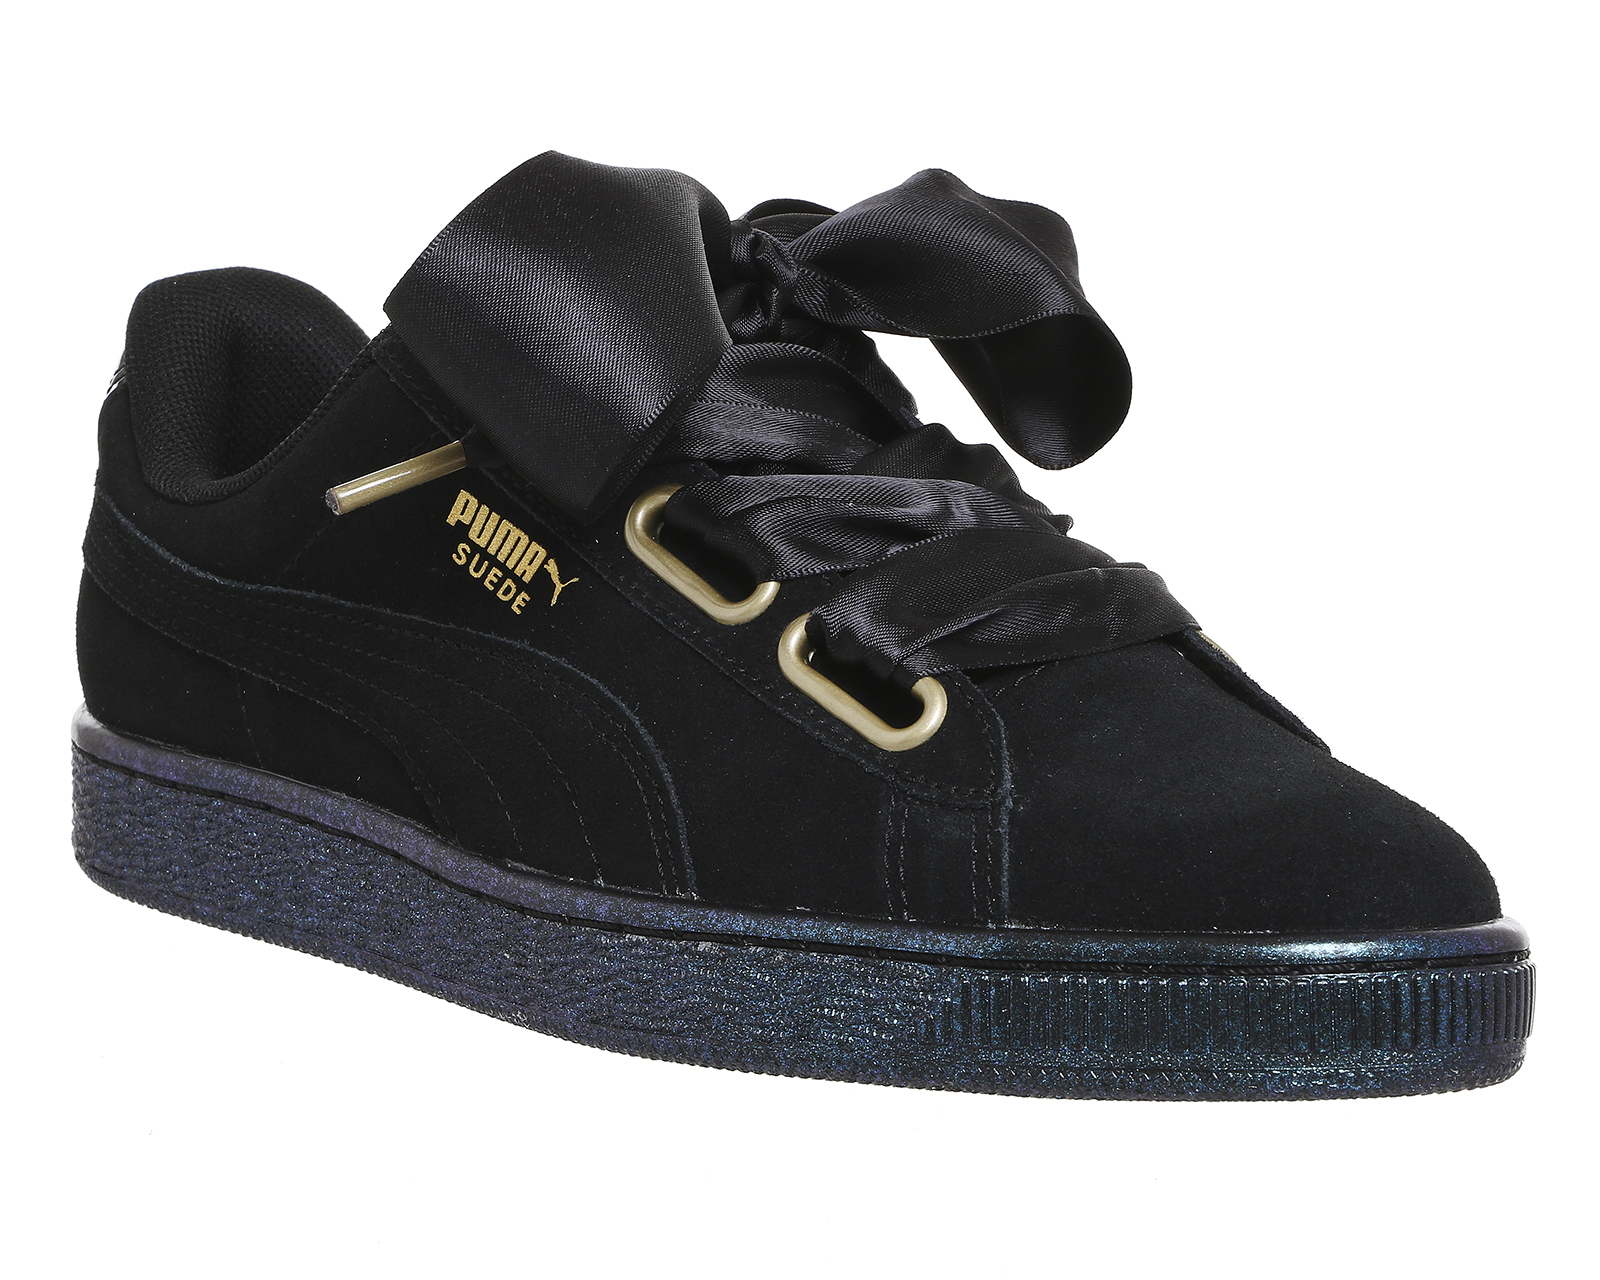 newest collection a5a12 f8d4b Womens Puma Black Suede Lace Up Trainers Size UK 3.5 *Ex ...